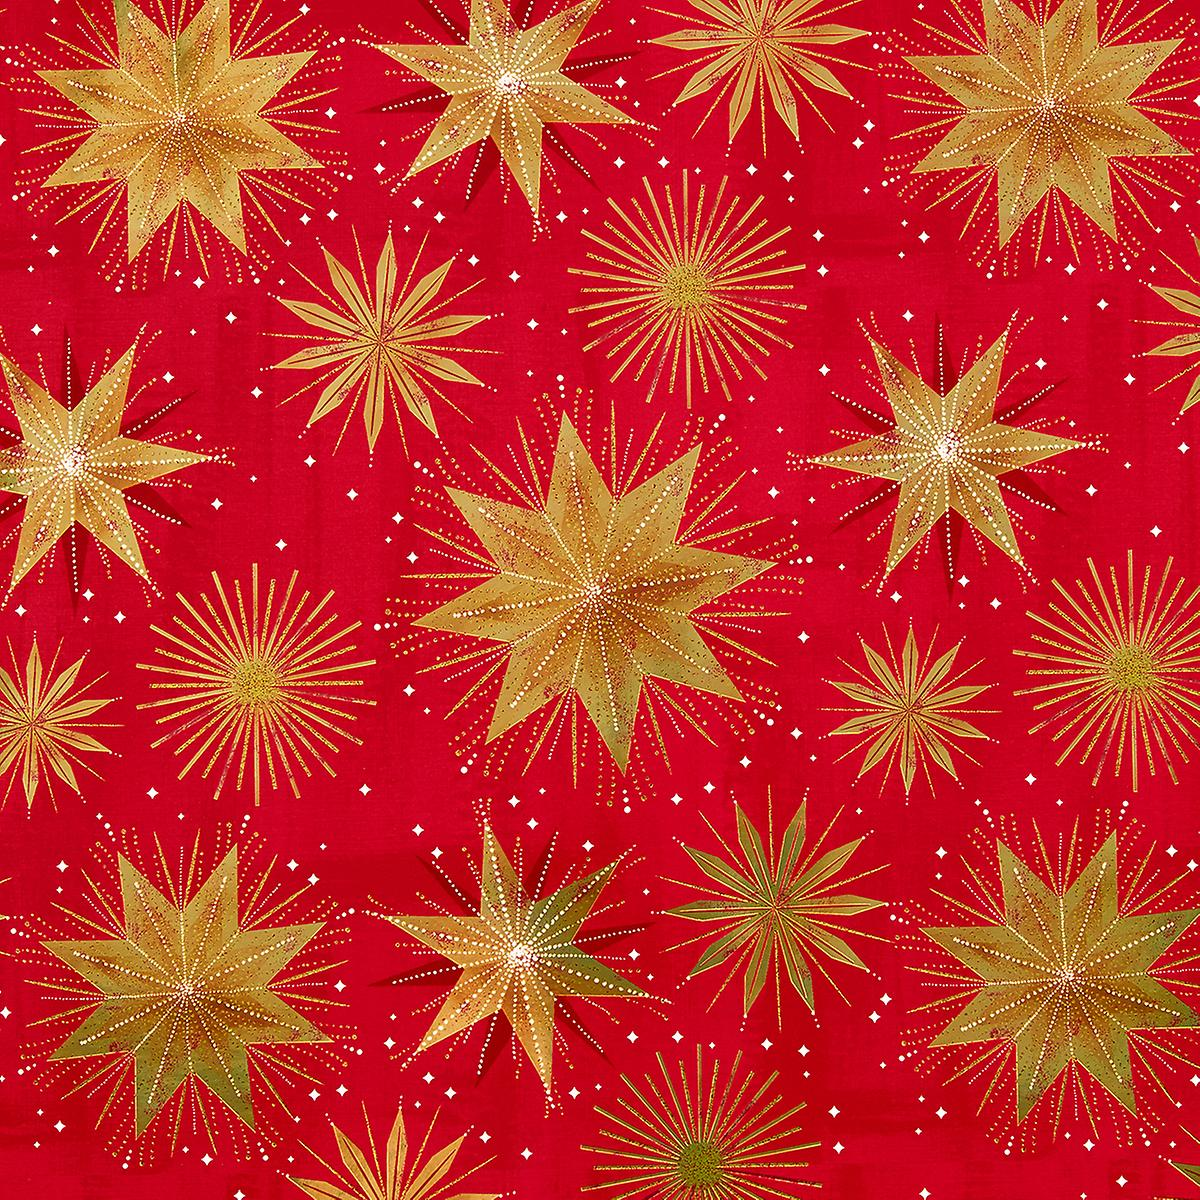 red and gold star wrapping paper